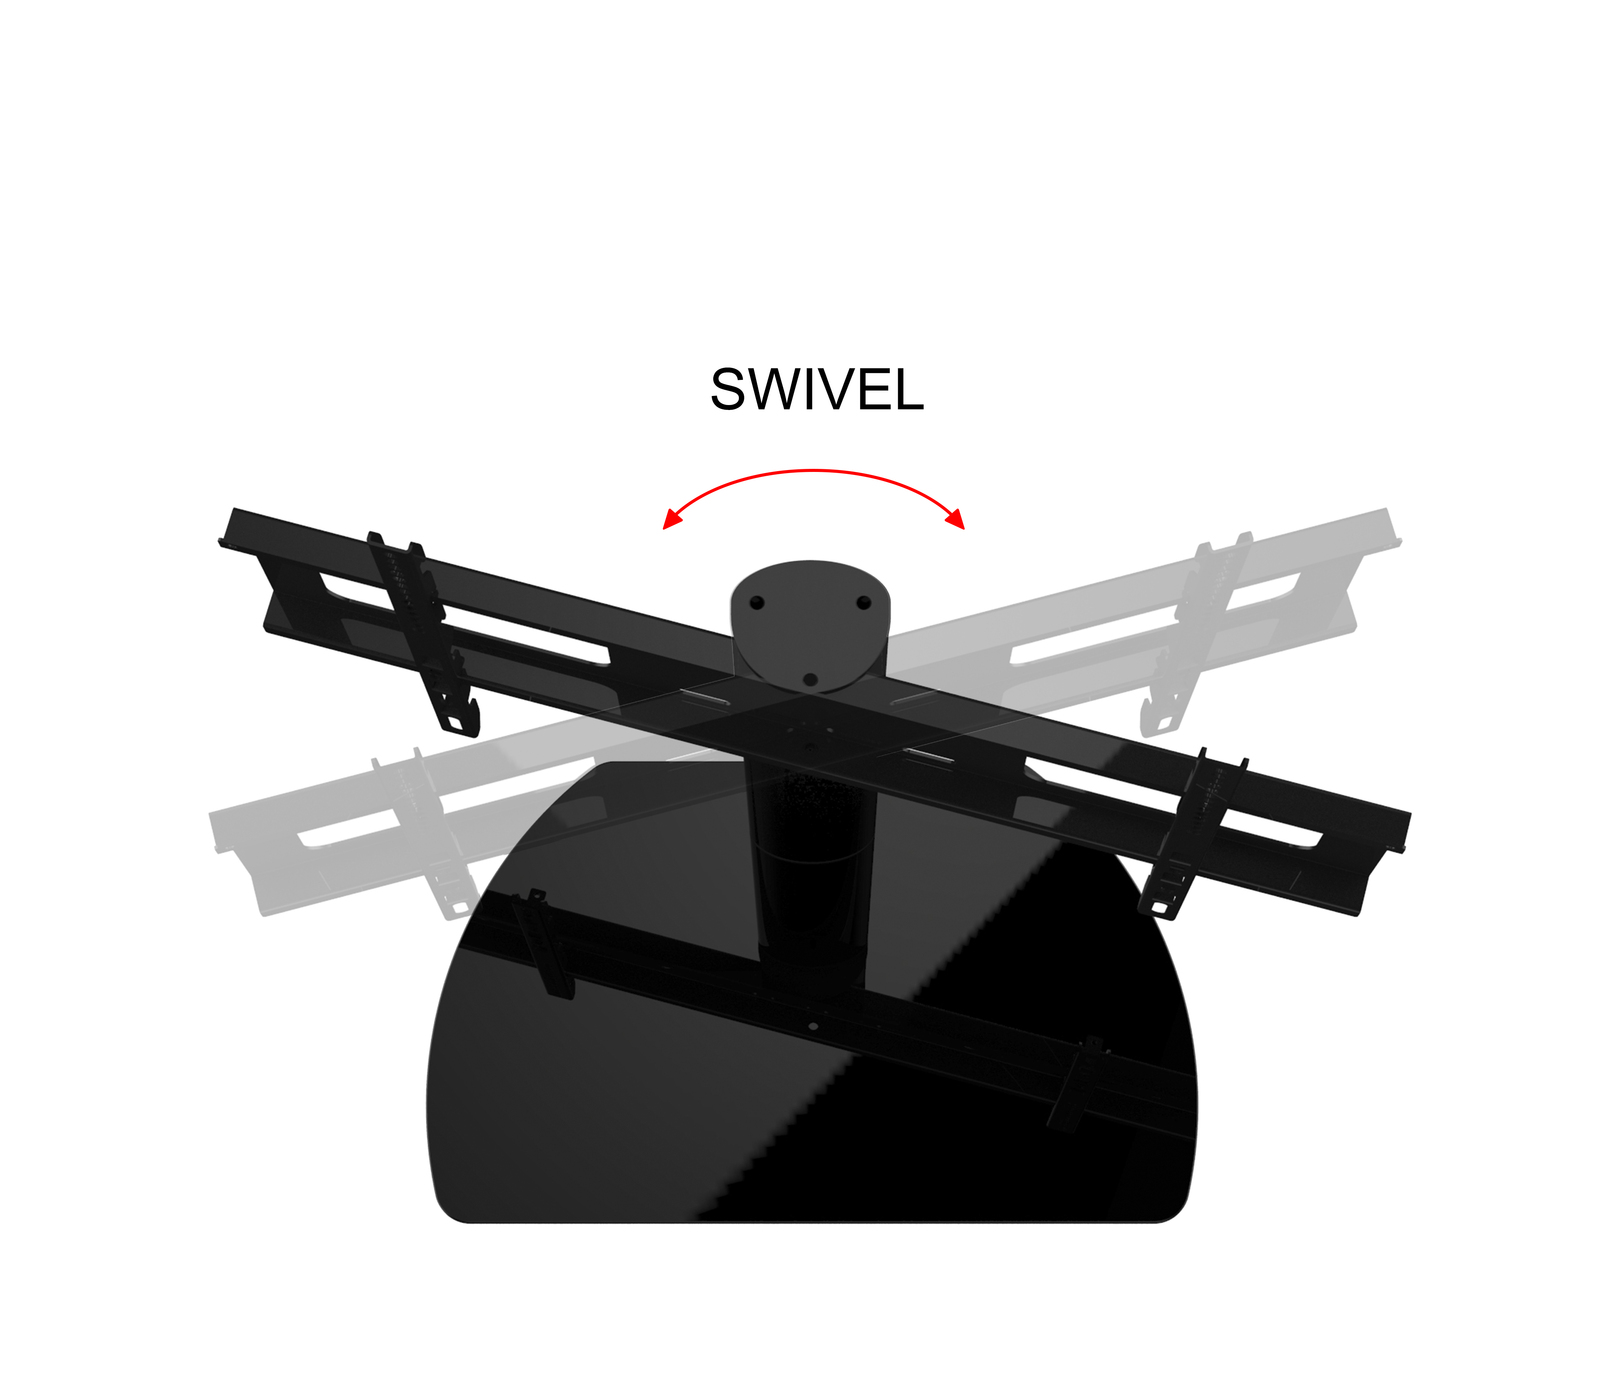 New Universal Replacement Swivel TV Stand/Base for Quasar SQ4800U